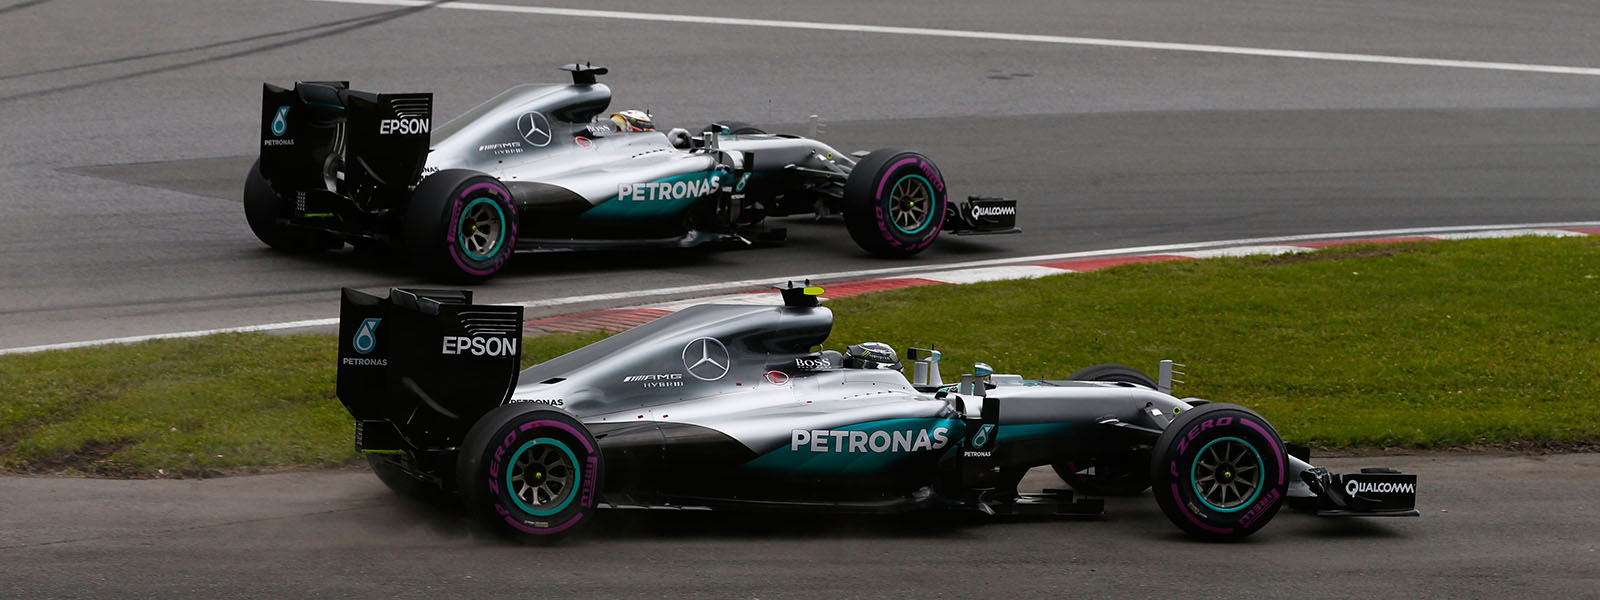 Motorsports: FIA Formula One World Championship 2016, Grand Prix of Canada, #44 Lewis Hamilton (GBR, Mercedes AMG Petronas F1 Team), #6 Nico Rosberg (GER, Mercedes AMG Petronas F1 Team), *** Local Caption *** +++ www.hoch-zwei.net +++ copyright: HOCH ZWEI +++